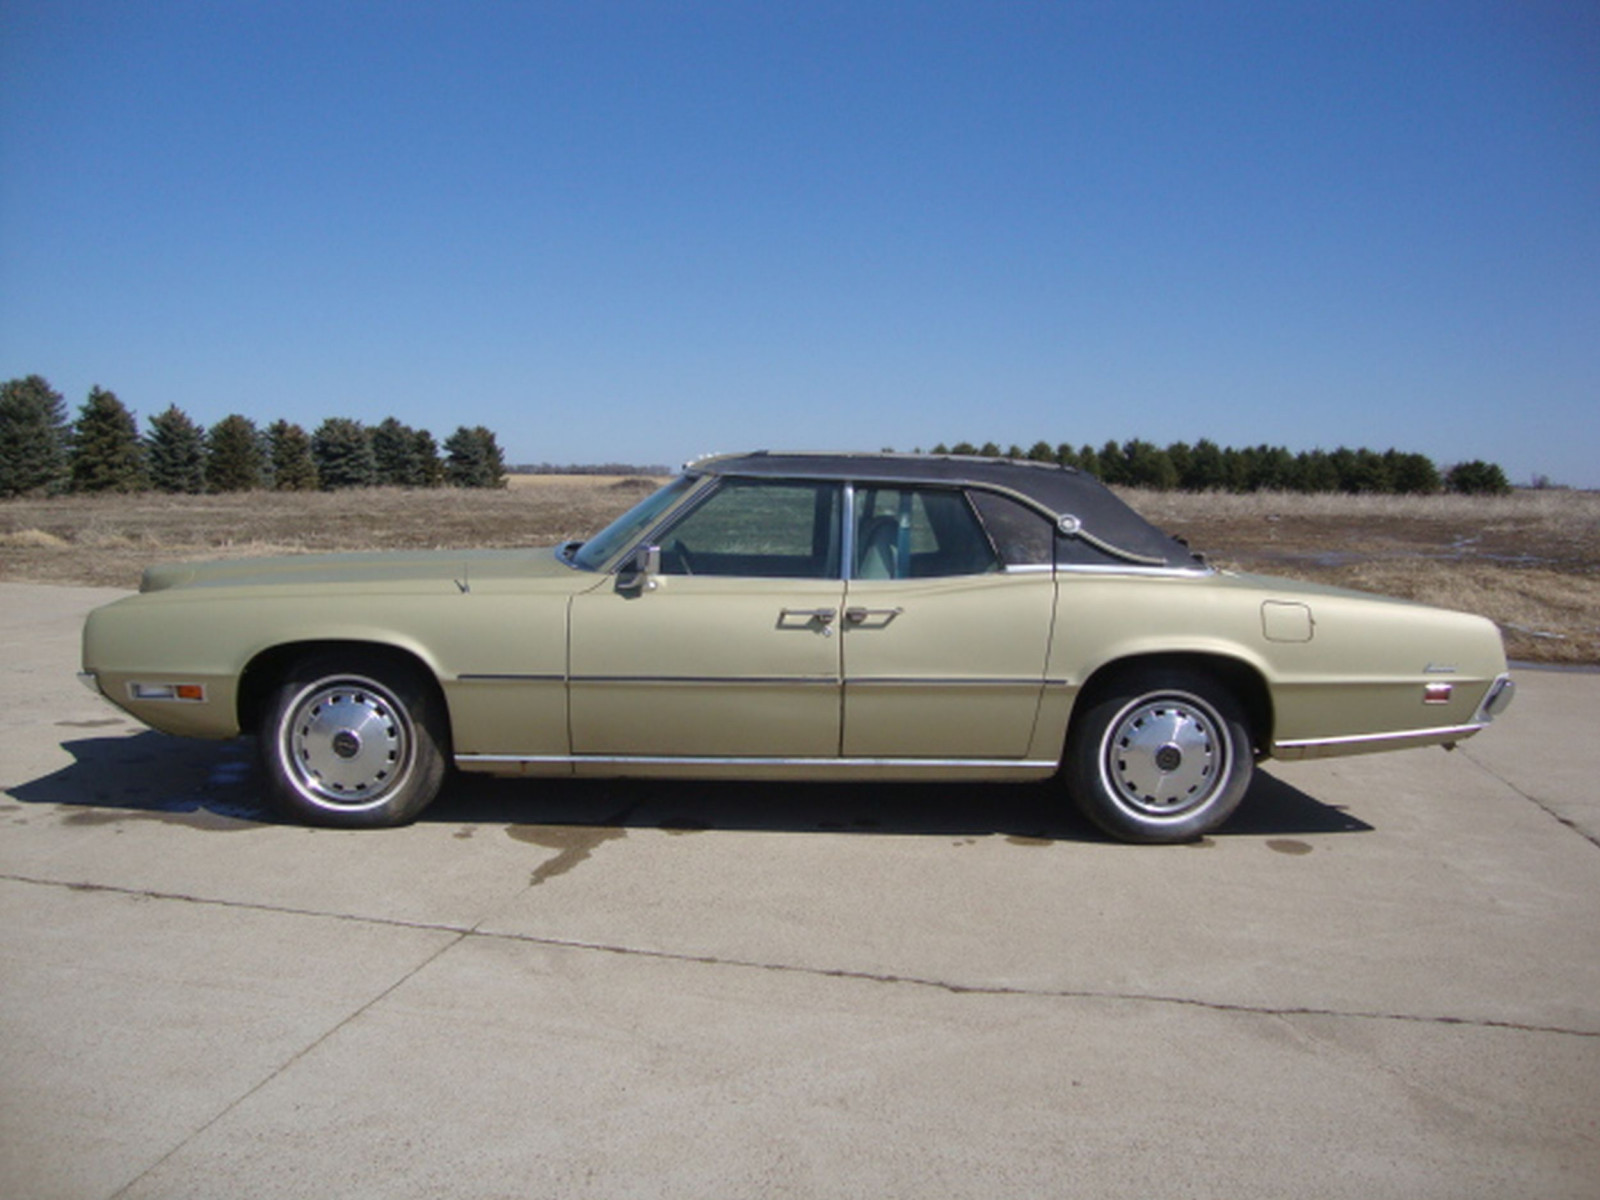 1971 Ford Thunderbird 4dr Sedan - Image 3